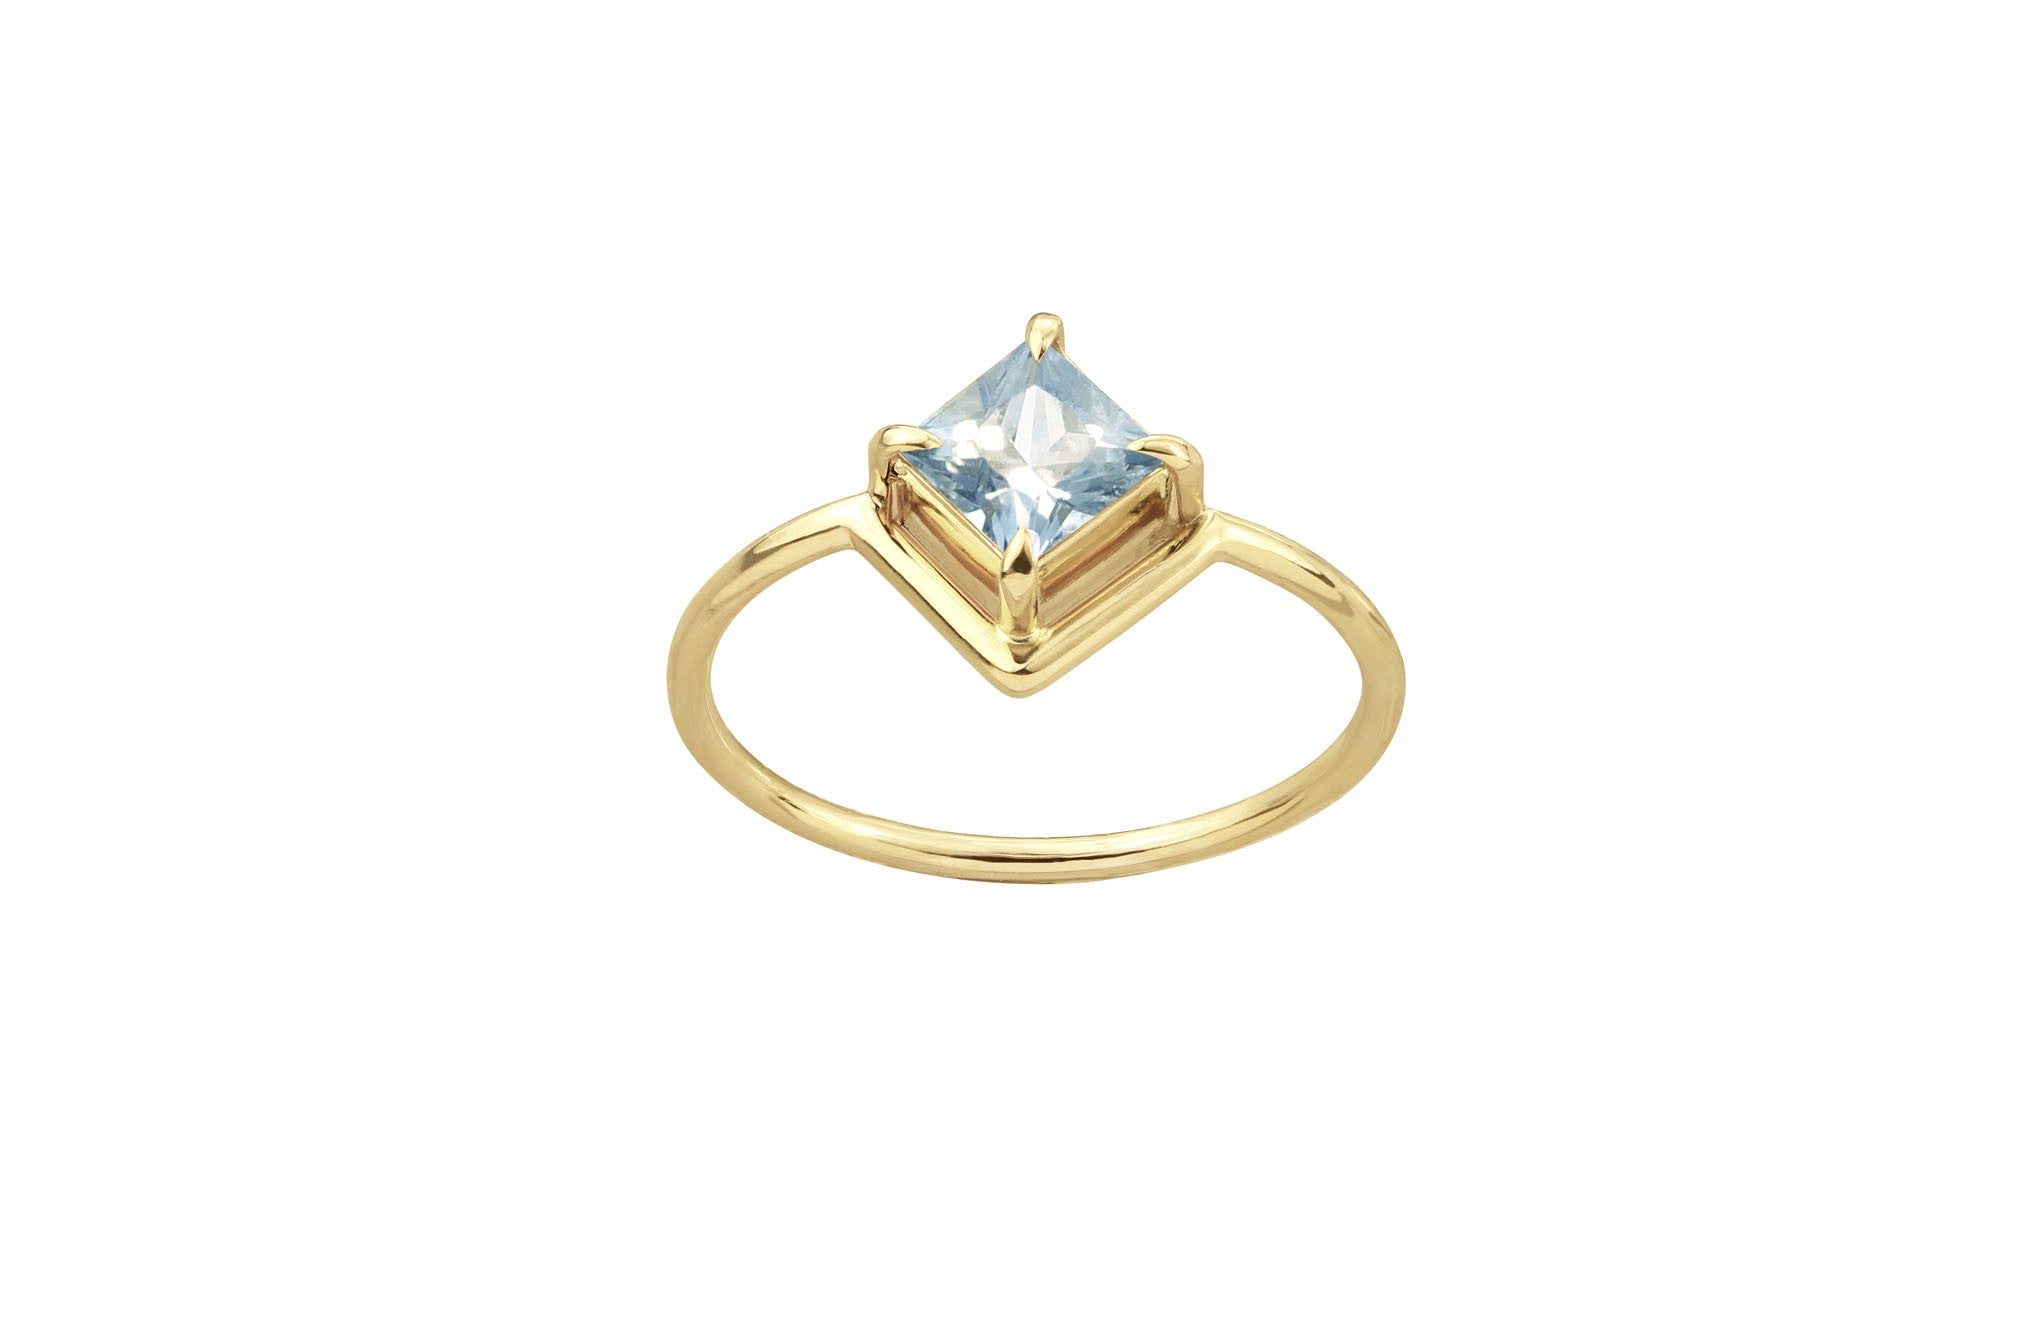 render sapphire three ctw band in floor light aqua with split channel gold metal shop white emitter ring wedding stone accents princess row blue